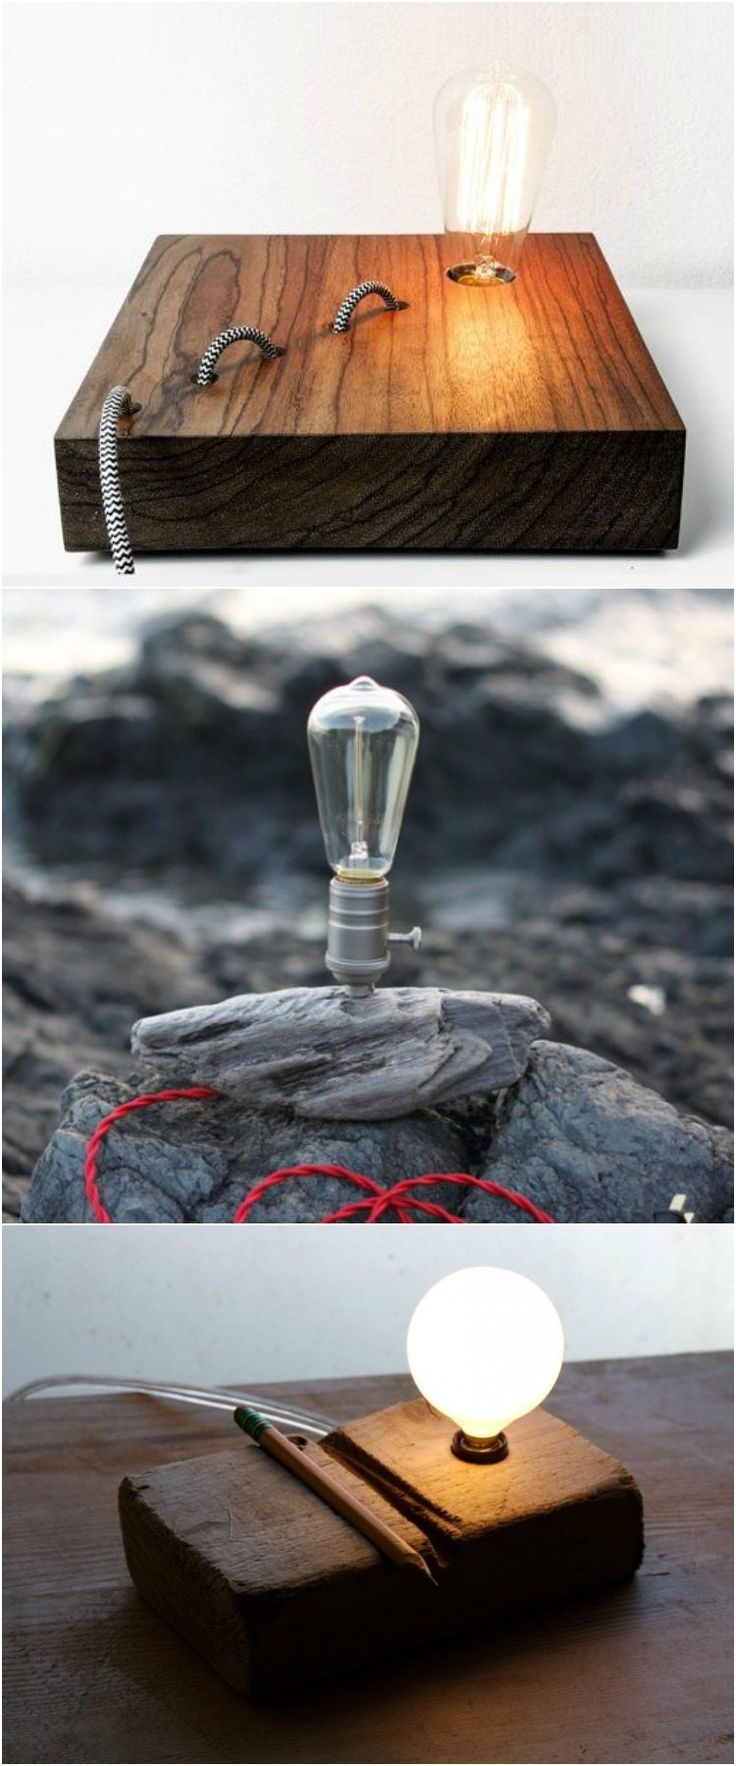 Best 25+ Wooden lamp ideas on Pinterest | Lamps, Wood lamps and ...